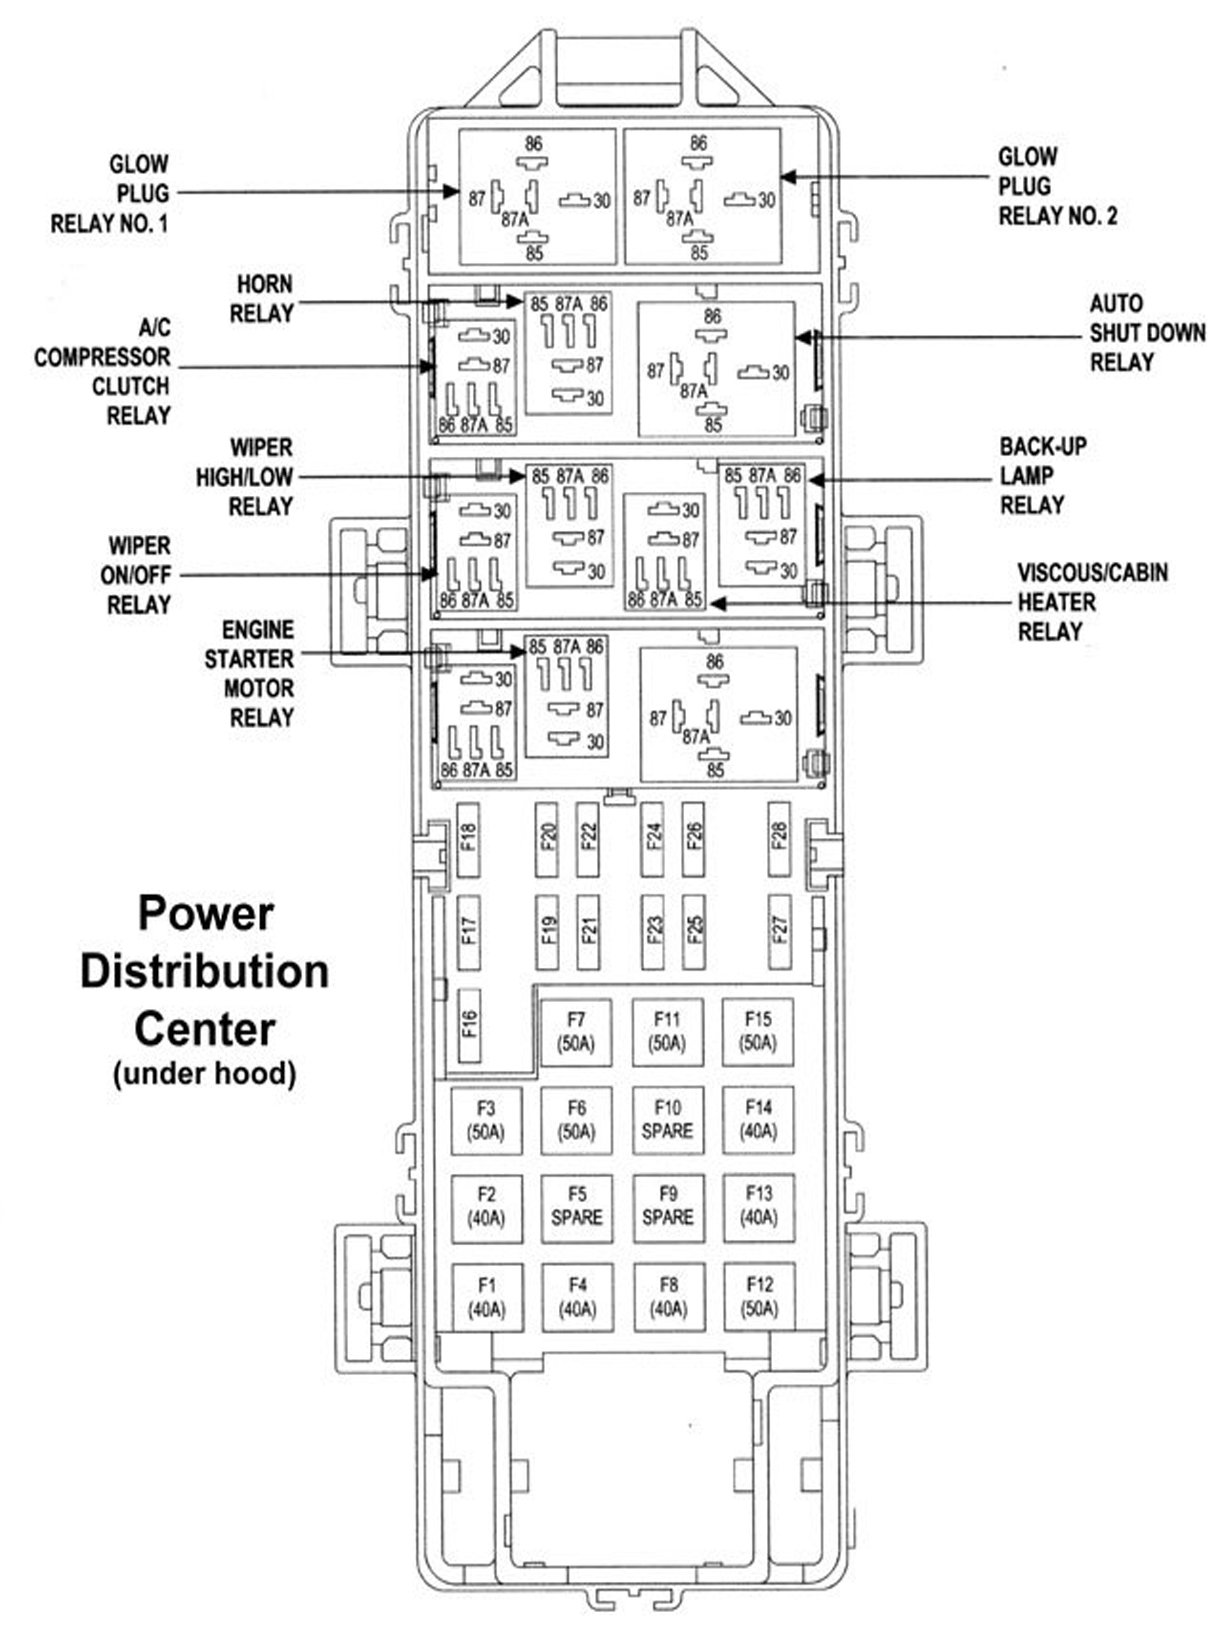 hight resolution of jeep grand cherokee wj 1999 to 2004 fuse box diagram cherokeeforumpower distribution center diagram